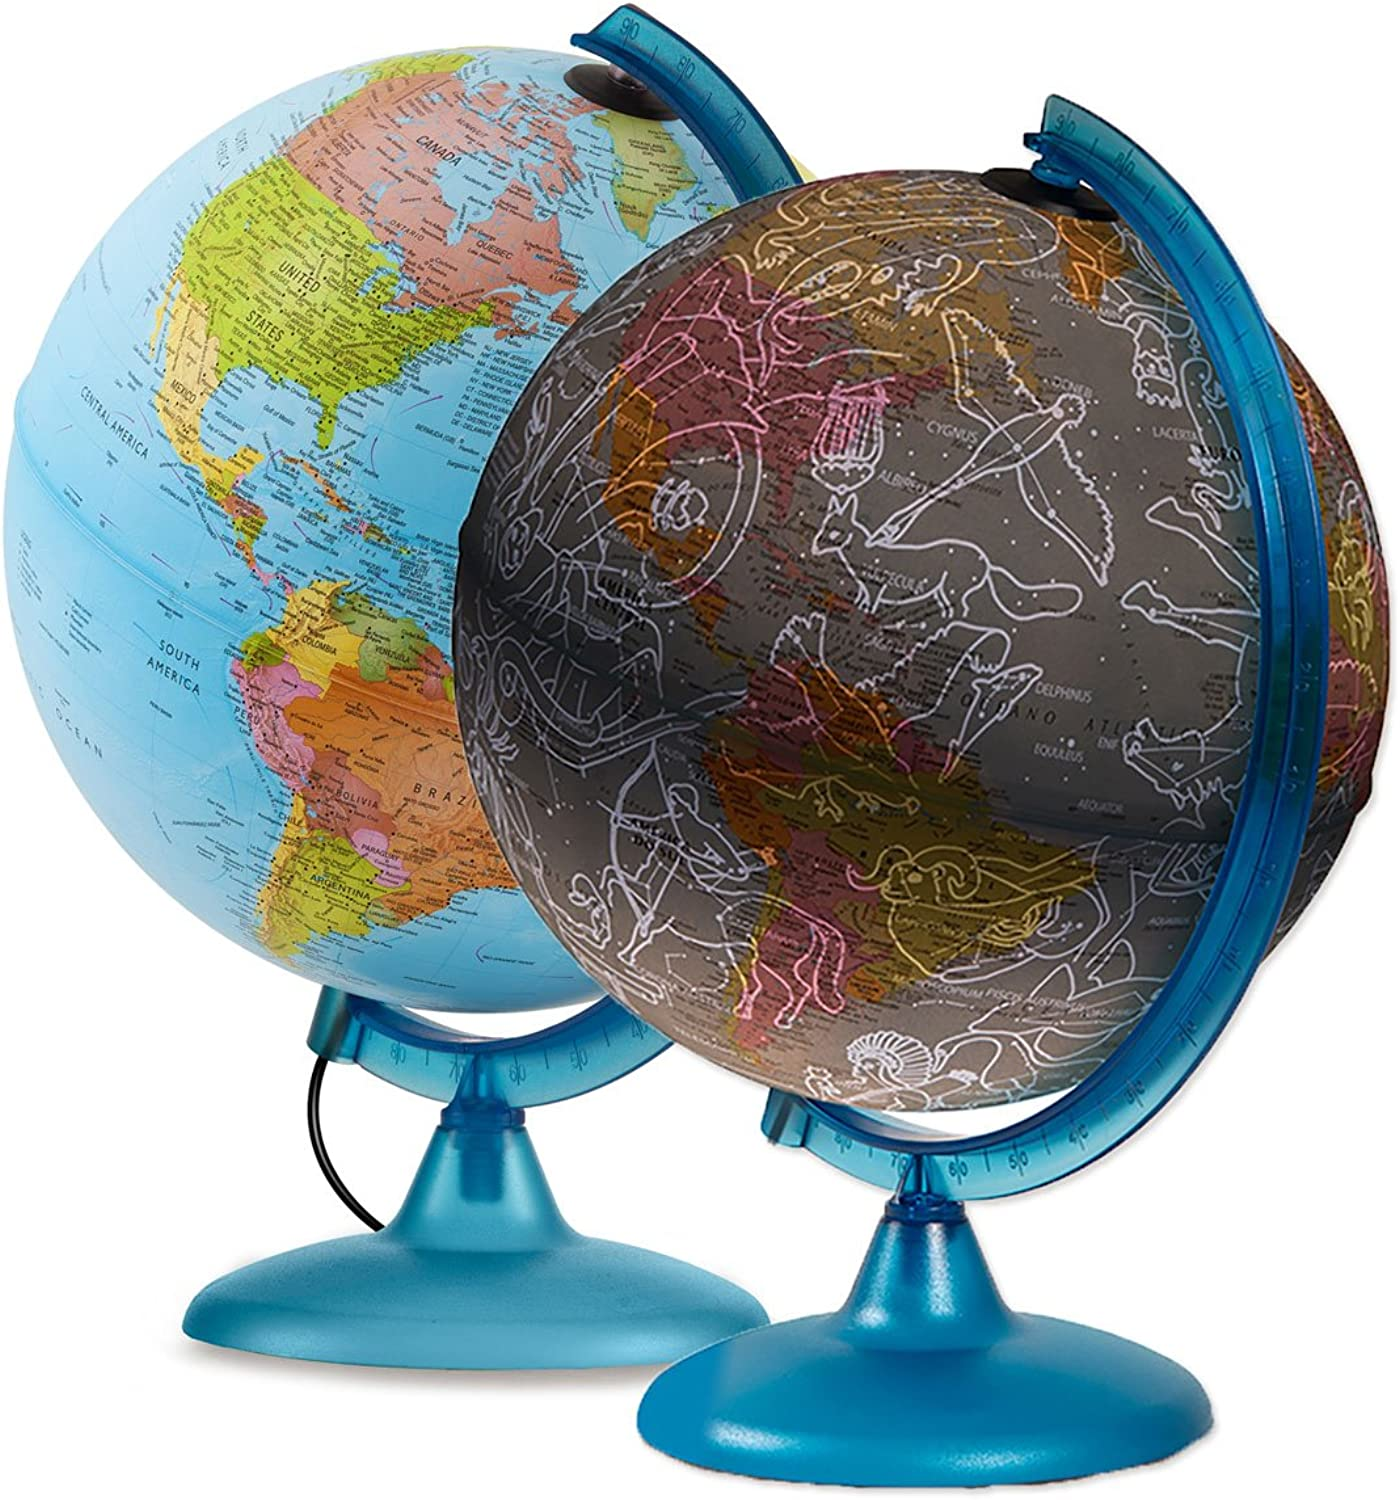 Waypoint Geographic Earth & Sky 2 in 1 Exploration Globe World, 10